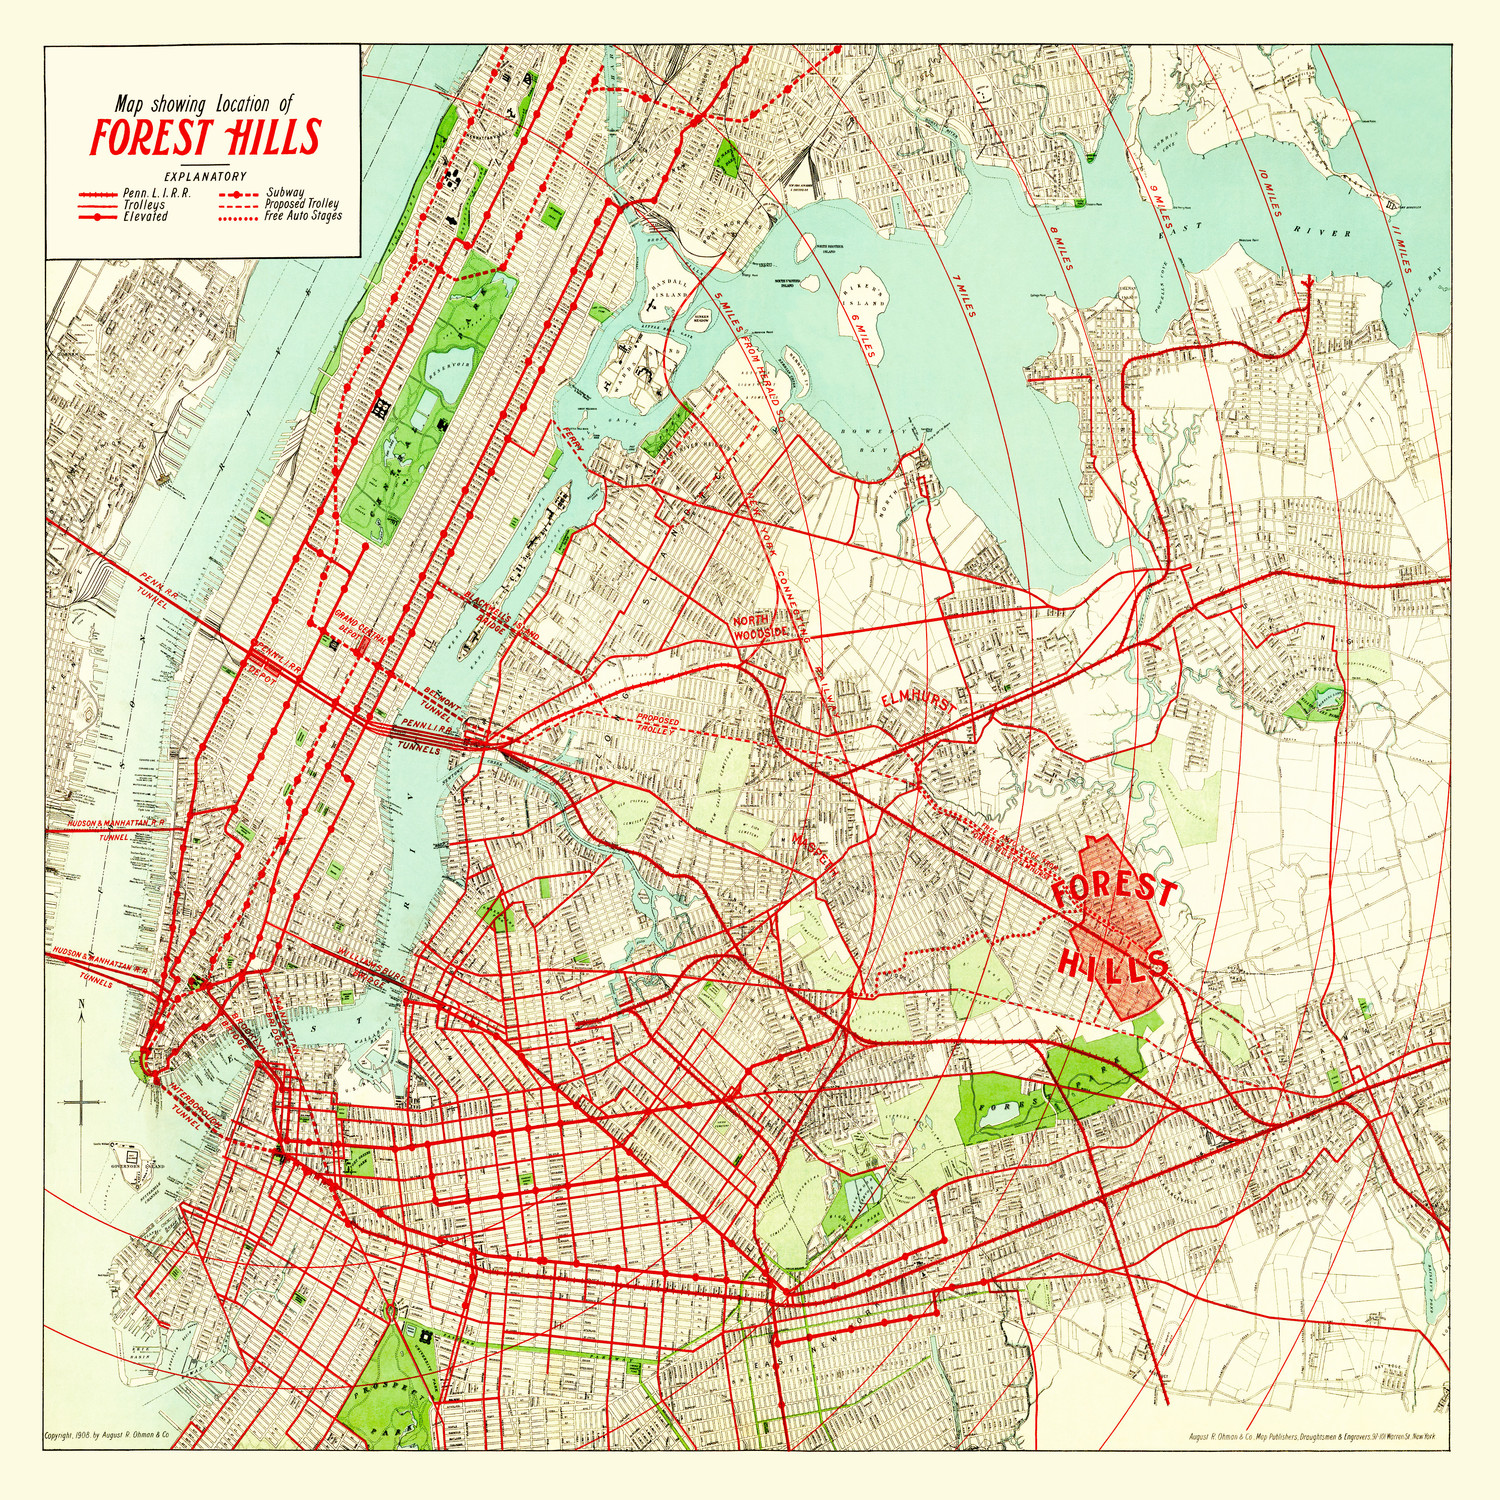 Vintage NYC subway, rail, and trolley map showing location of Forest Hills, early 1900s